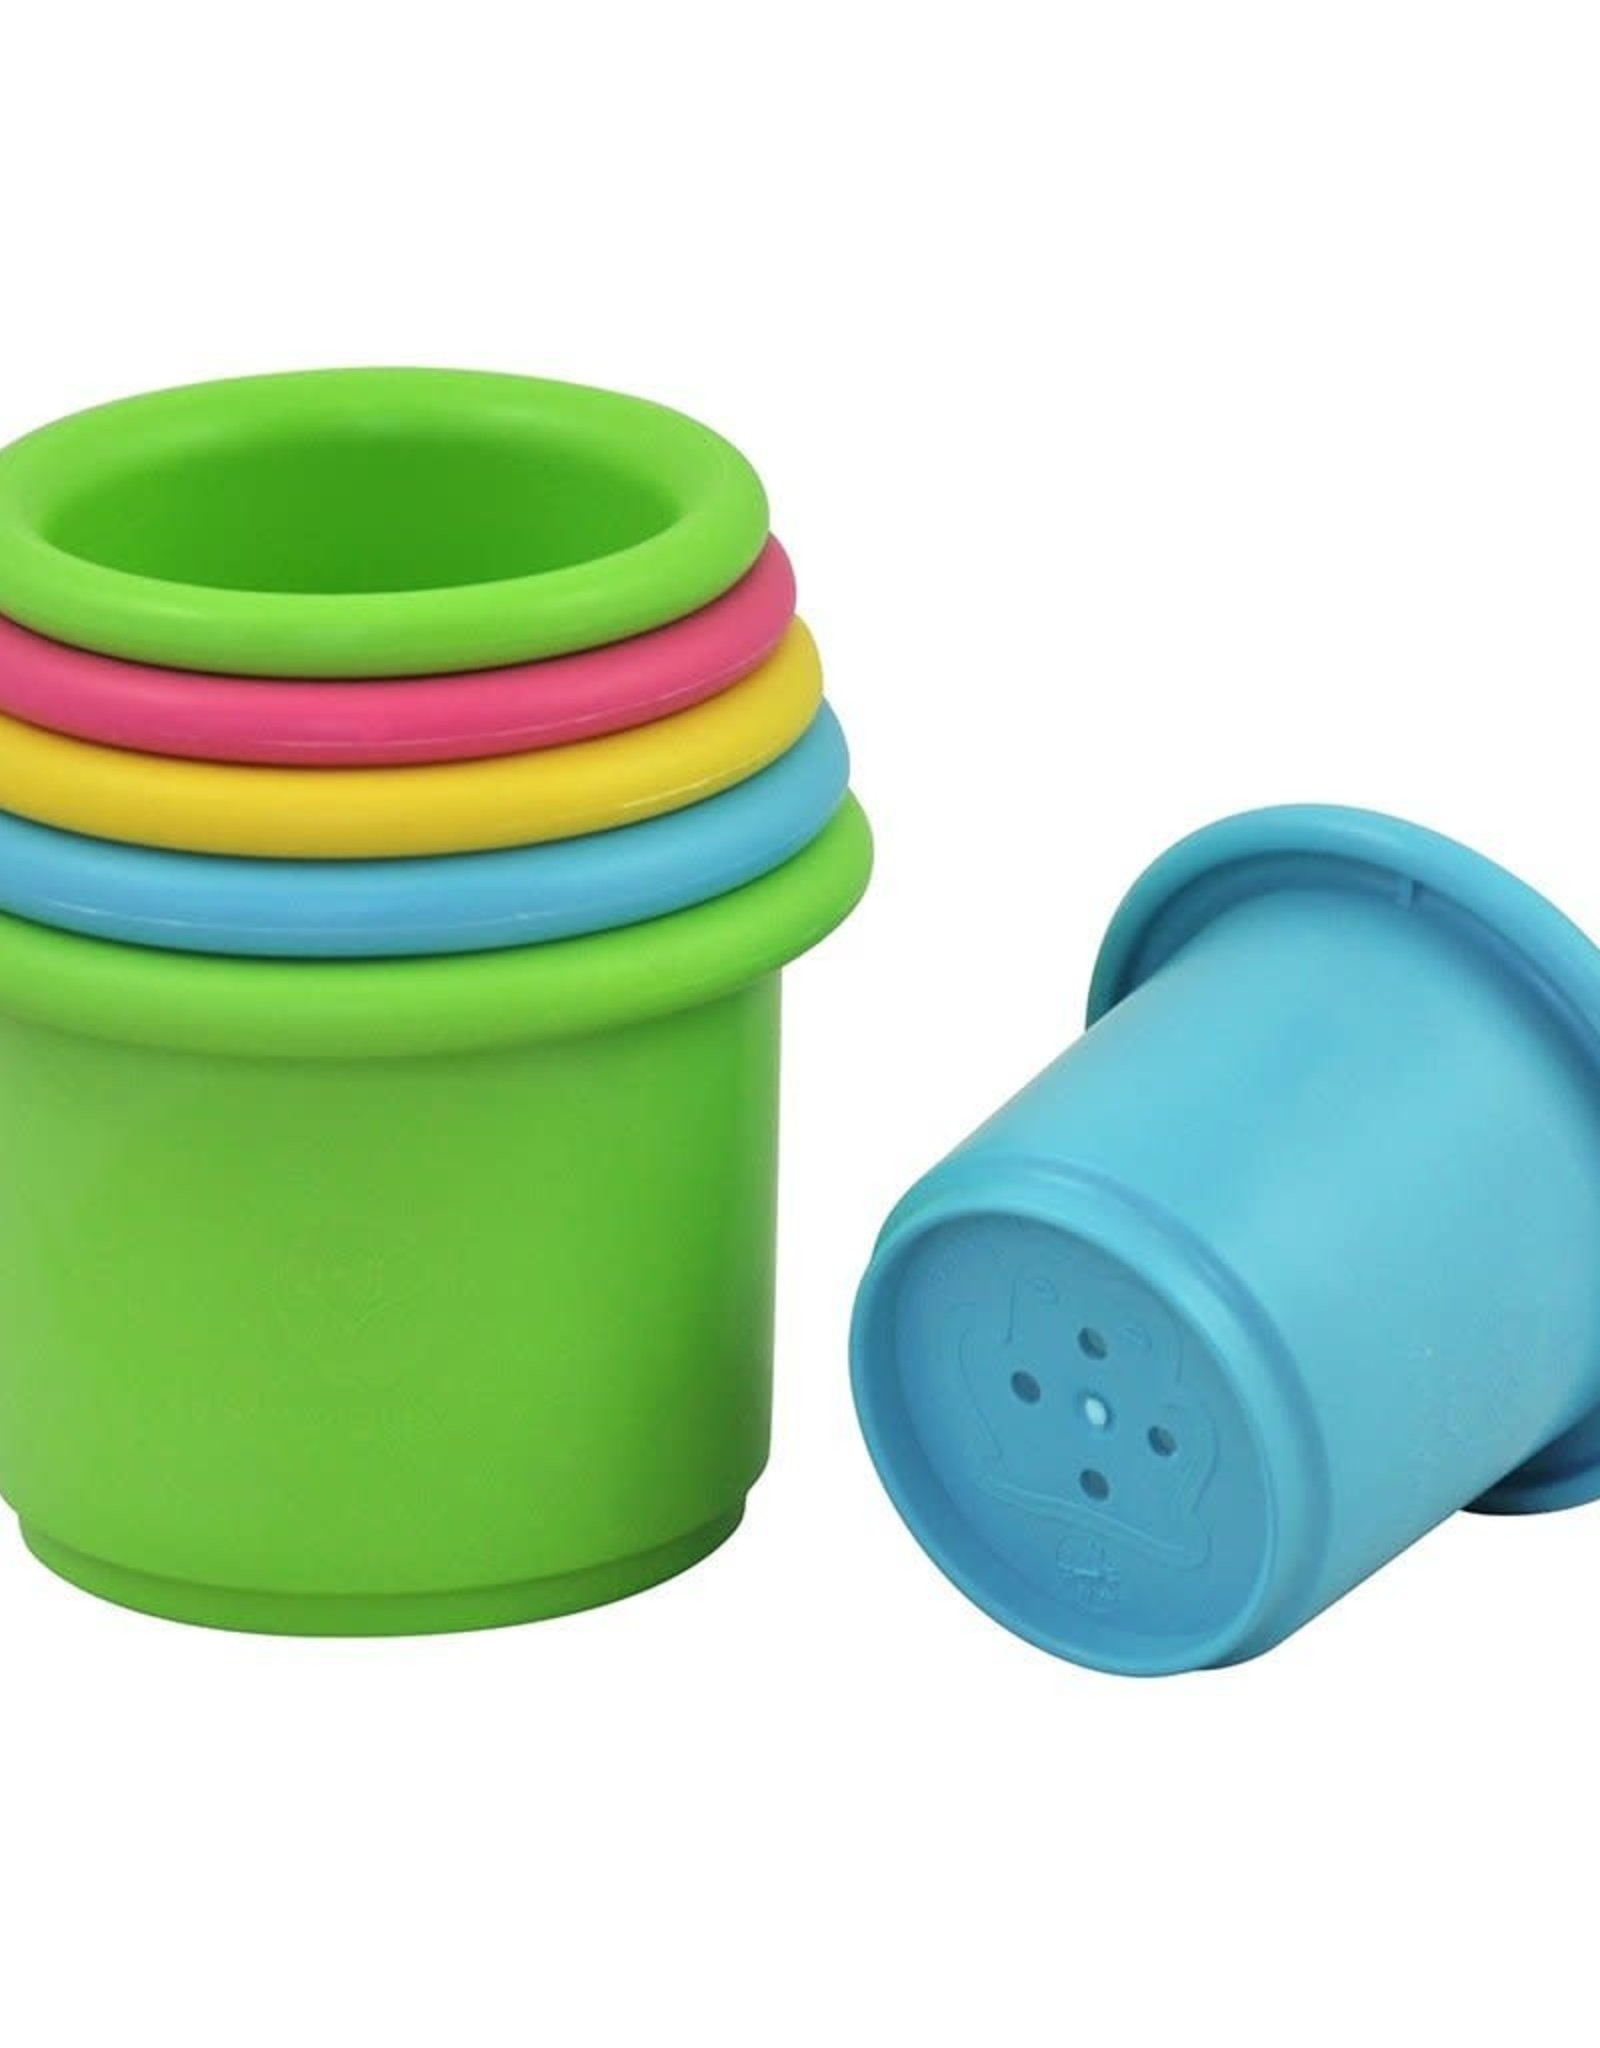 Green Sprouts Stacking Cups from Plants